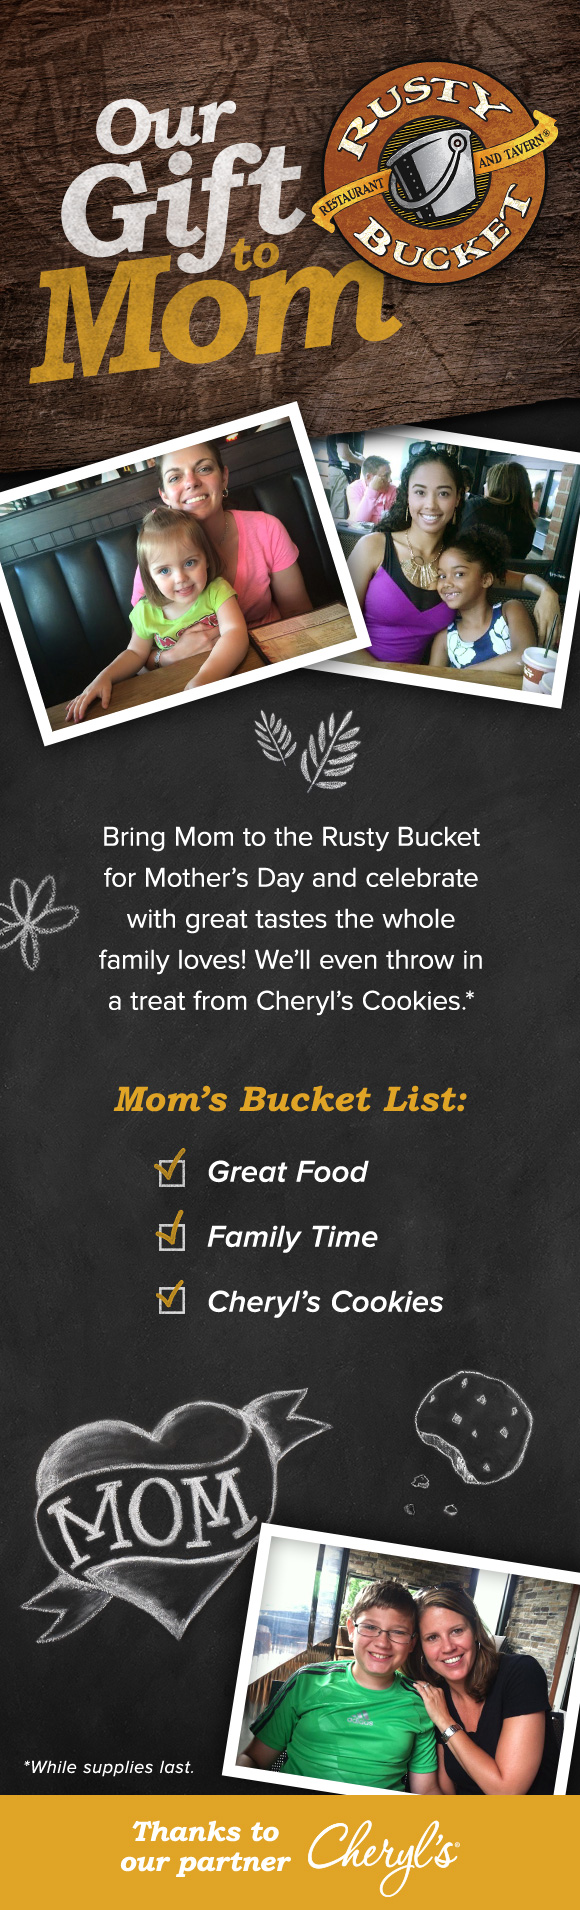 Our Gift to Mom!